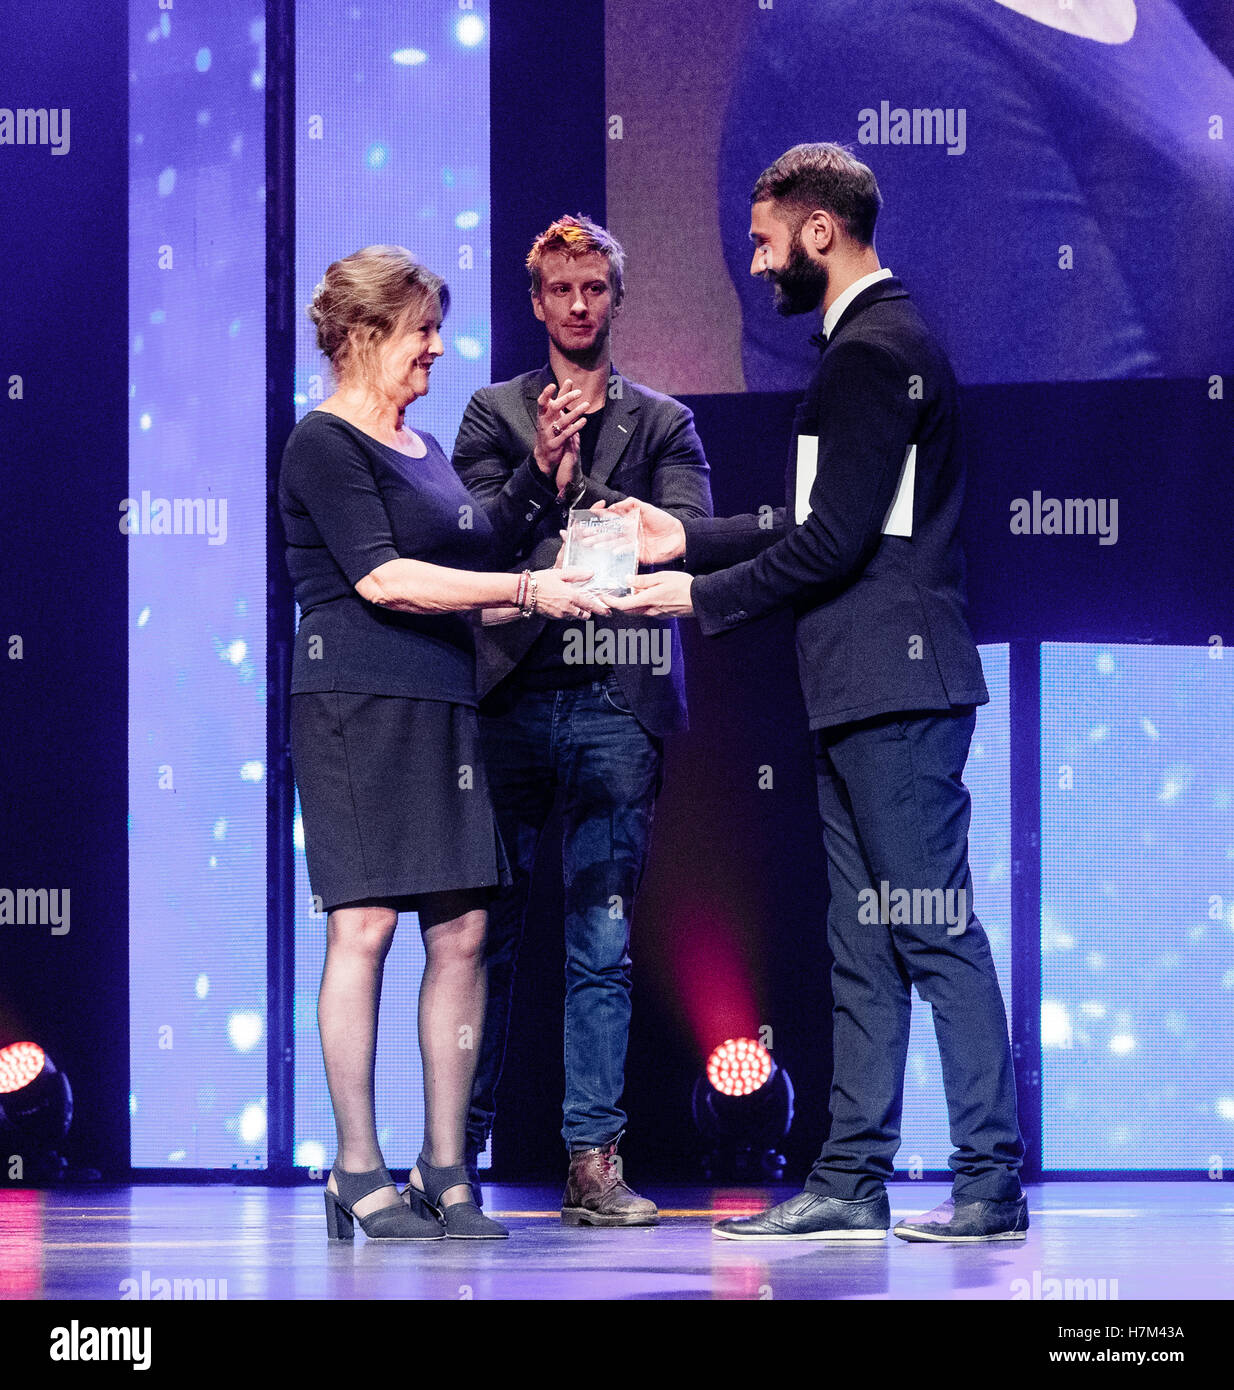 Luebeck, Germany. 05th Nov, 2016. Lithuanian actor Justas Valinskas (r) and actor Filip Nicas Berg (c) hand over - Stock Image